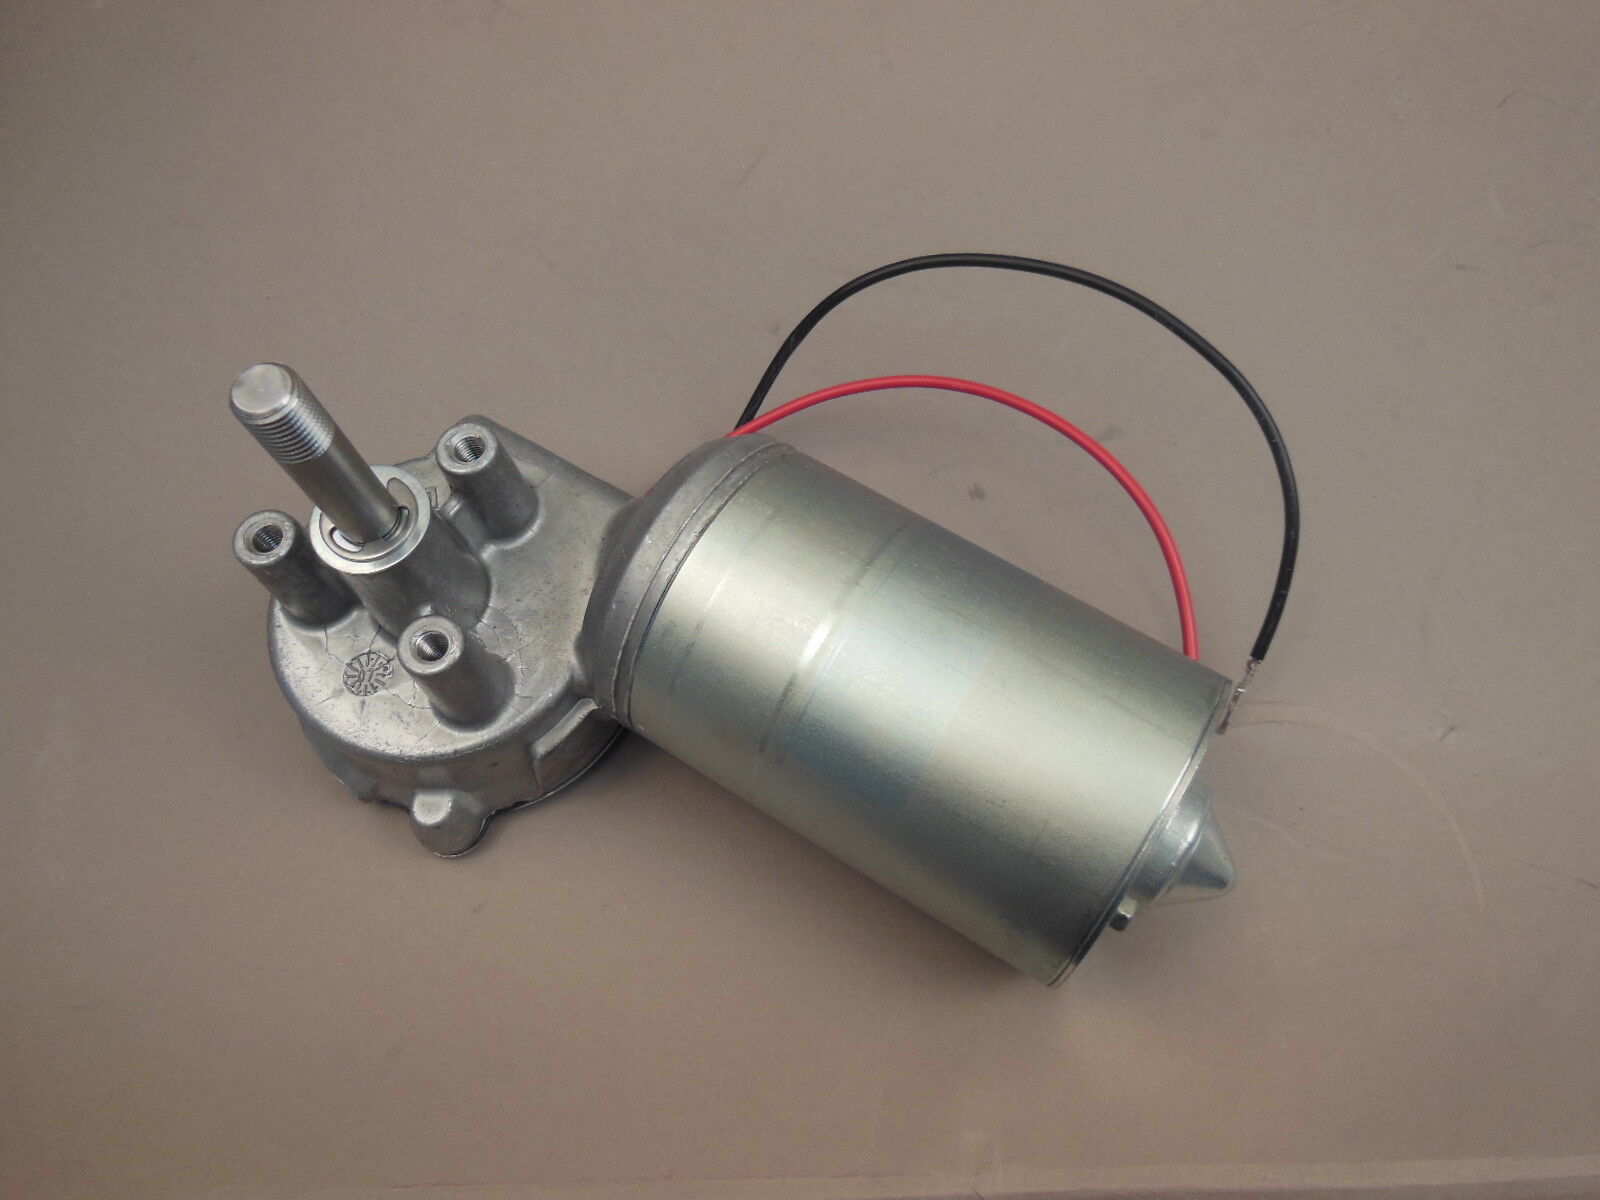 Snap On Mig Welder Wire Drive Feed Motor Sn138c24 Ya212a Mm 250sl Fm 140a For Sale Online Ebay